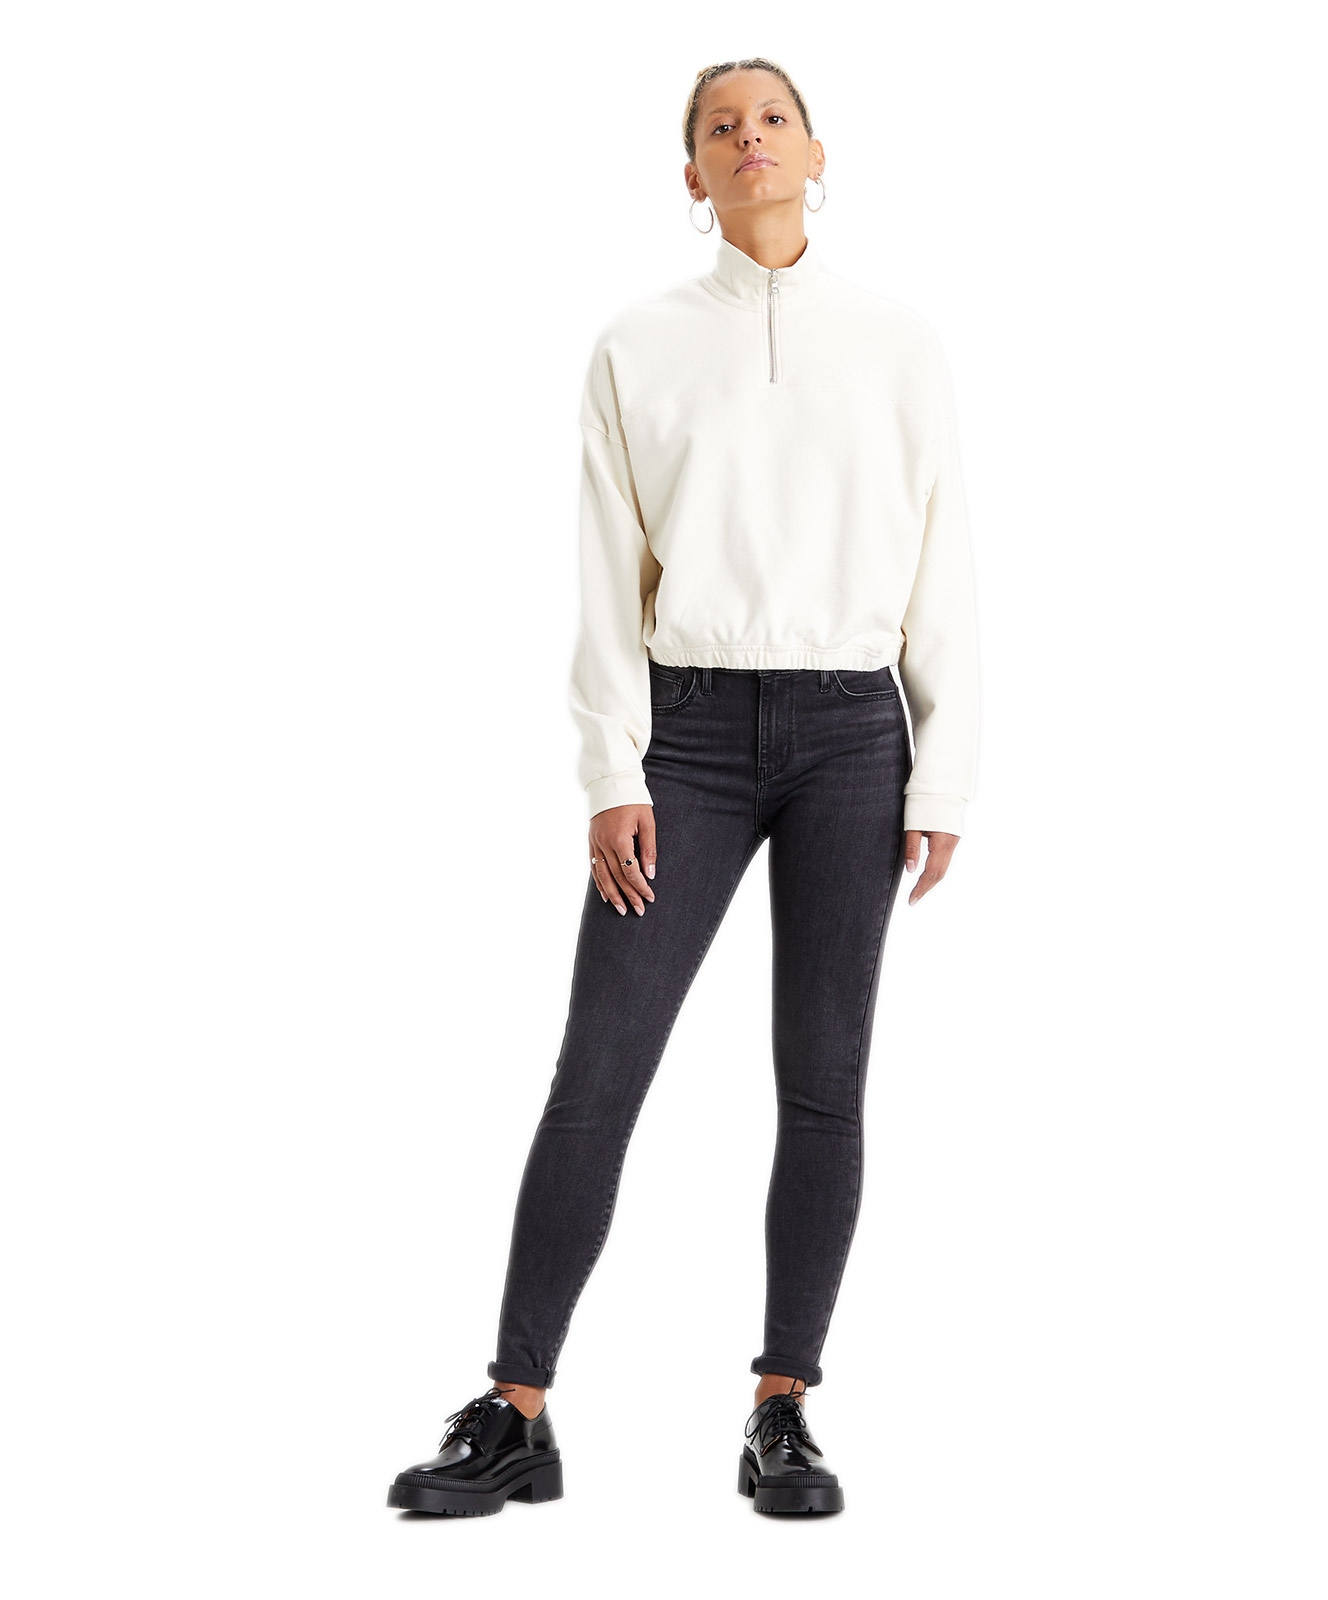 Hosen - Levis High Waisted Jeans 720 High Rise Super Skinny in Smoked Out  - Onlineshop Jeans Meile